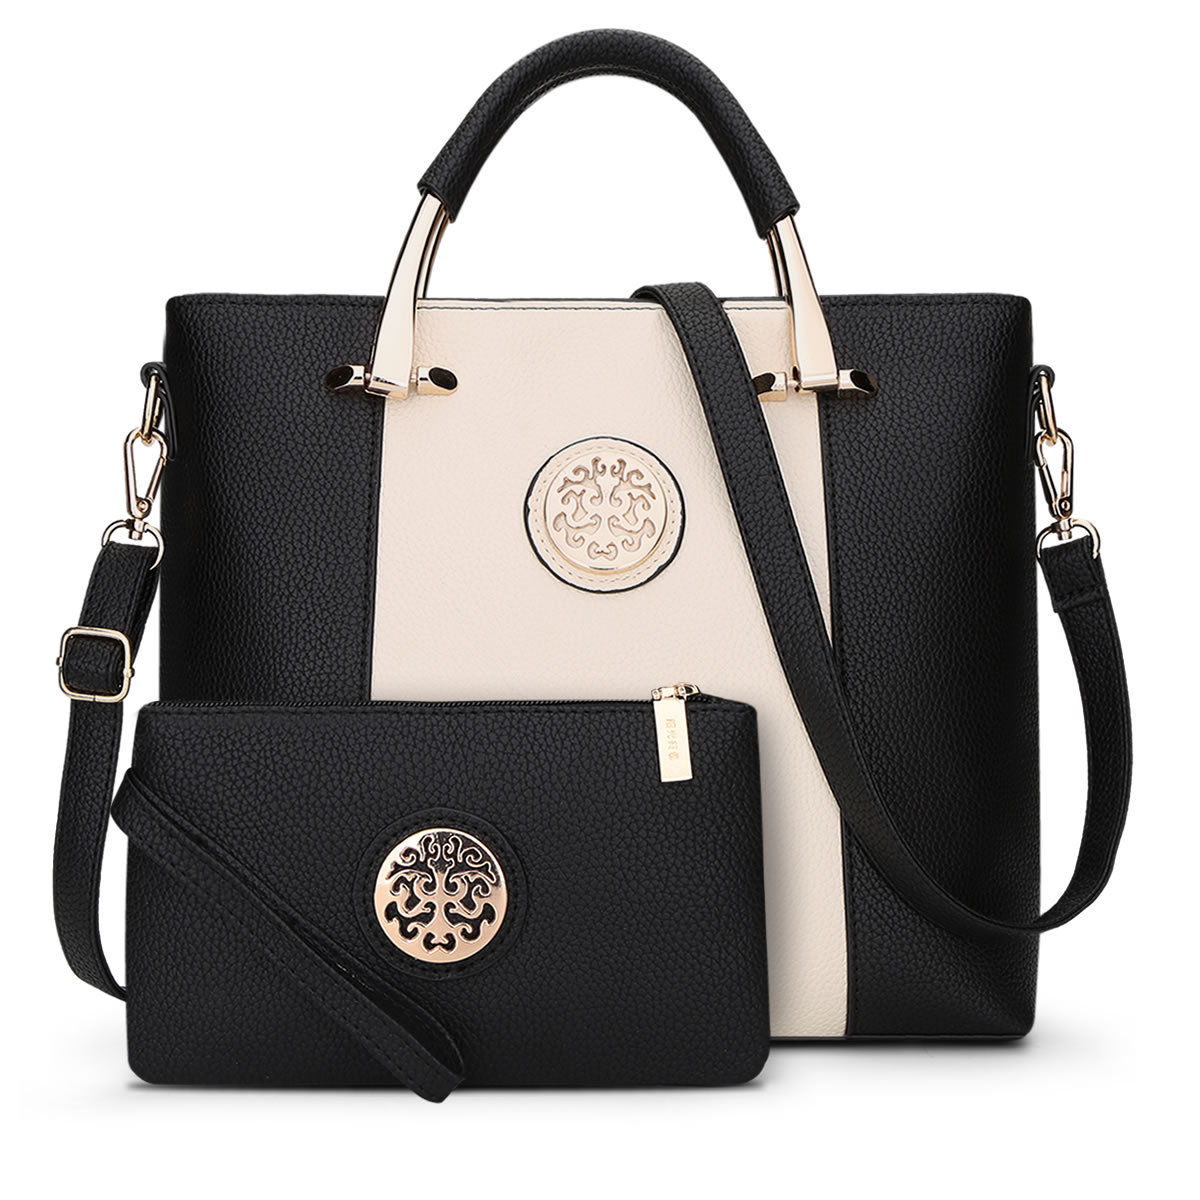 2017 New 2 Bags/Set European And American Style Women Tote ...